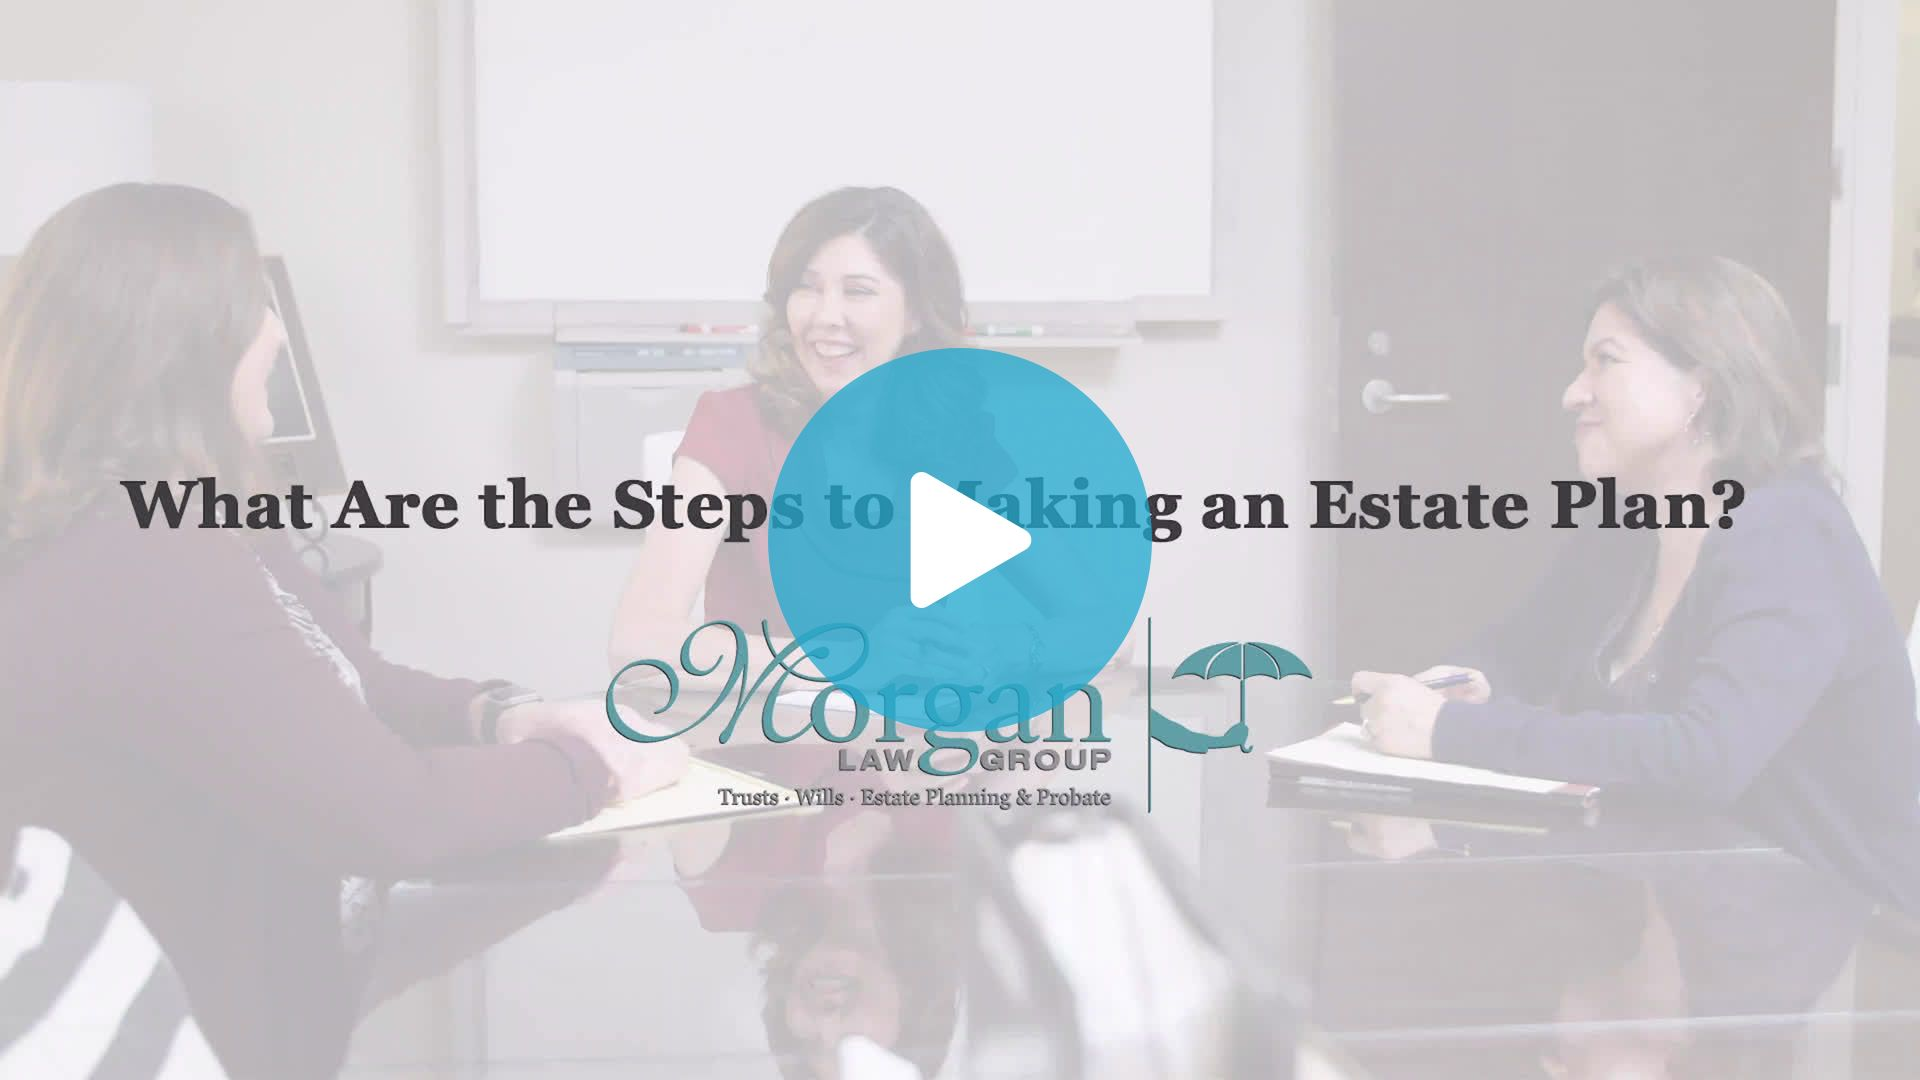 9.-What-are-the-steps-to-making